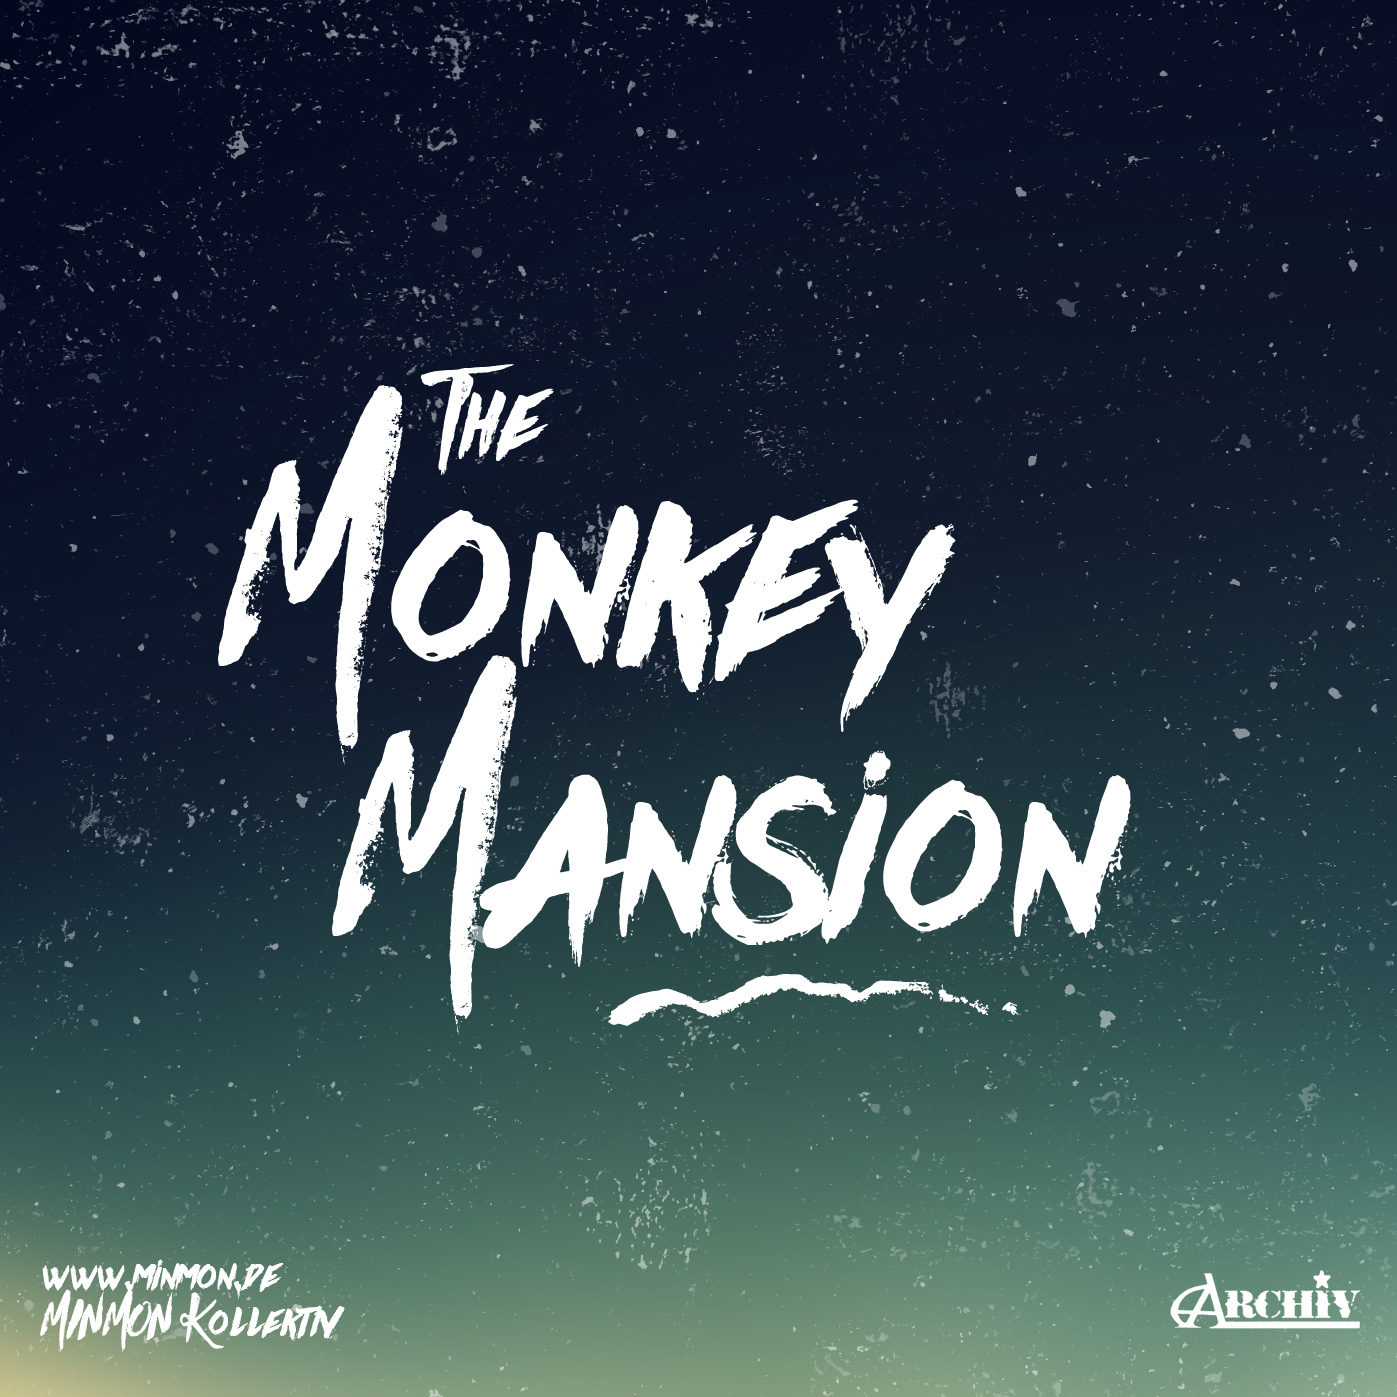 05.12.15 The Monkey Mansion @ Archiv